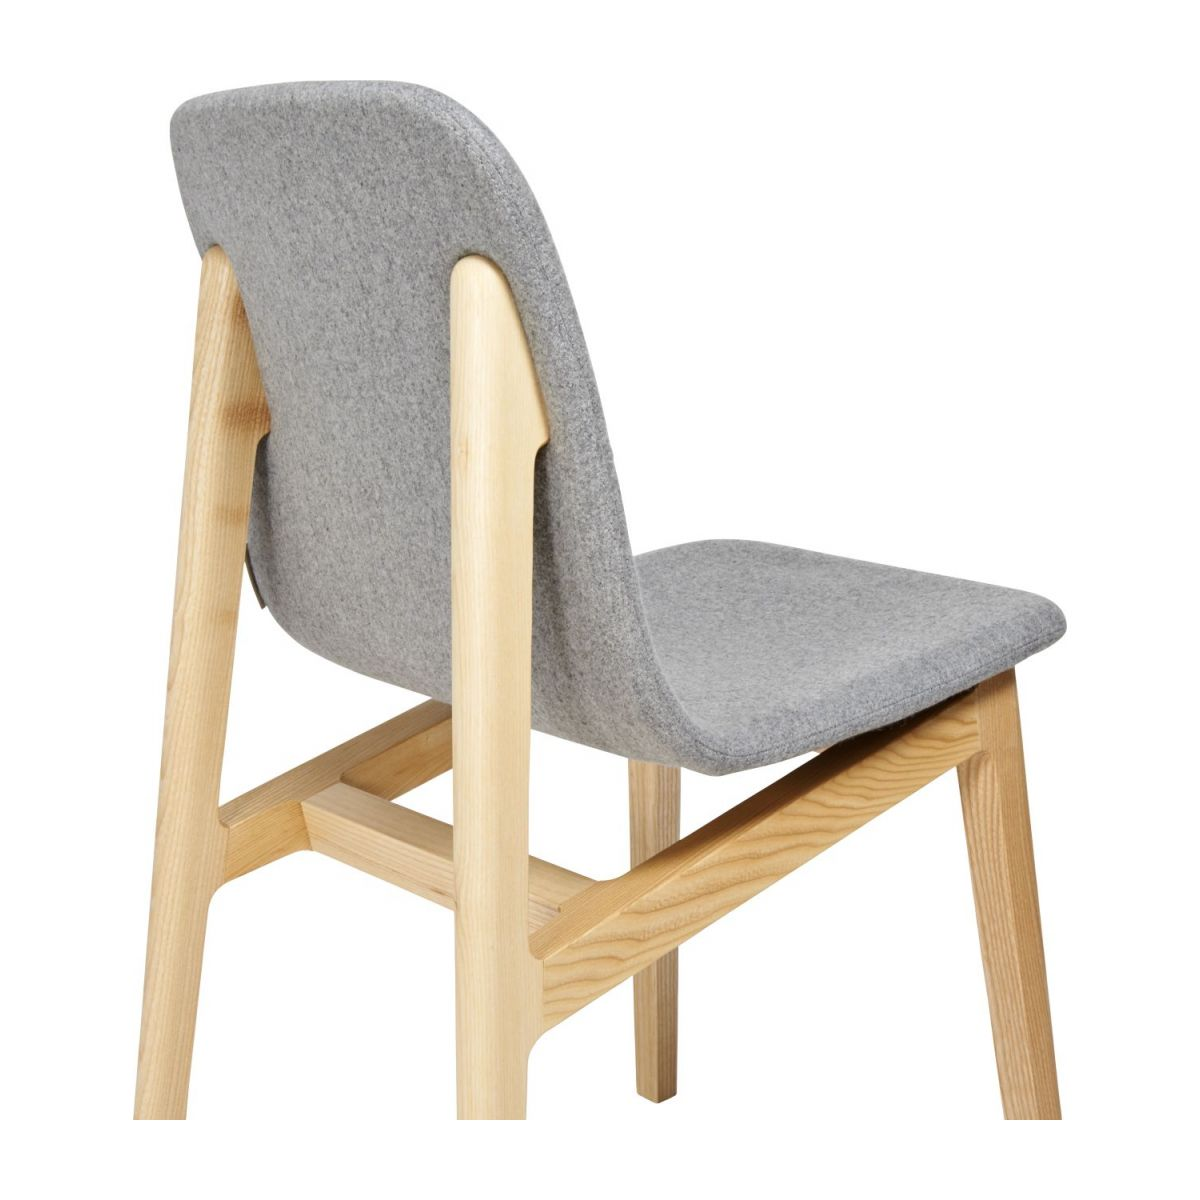 Chair made of ash tree and felt, grey n°7